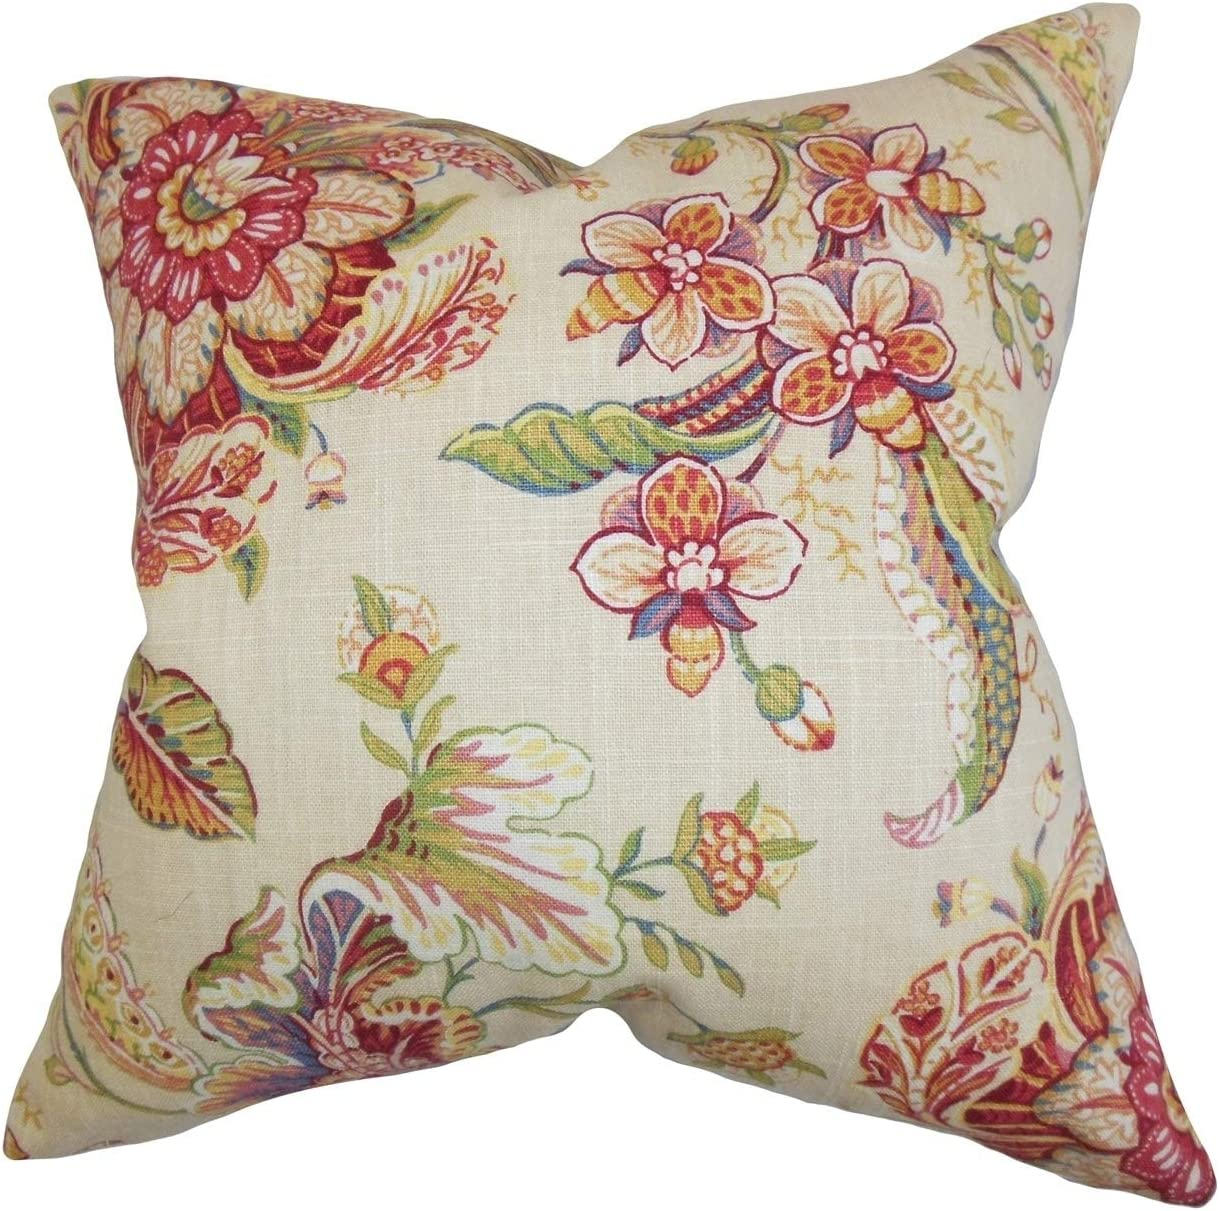 The Pillow Collection Iselin Floral White Down Filled Throw Pillow